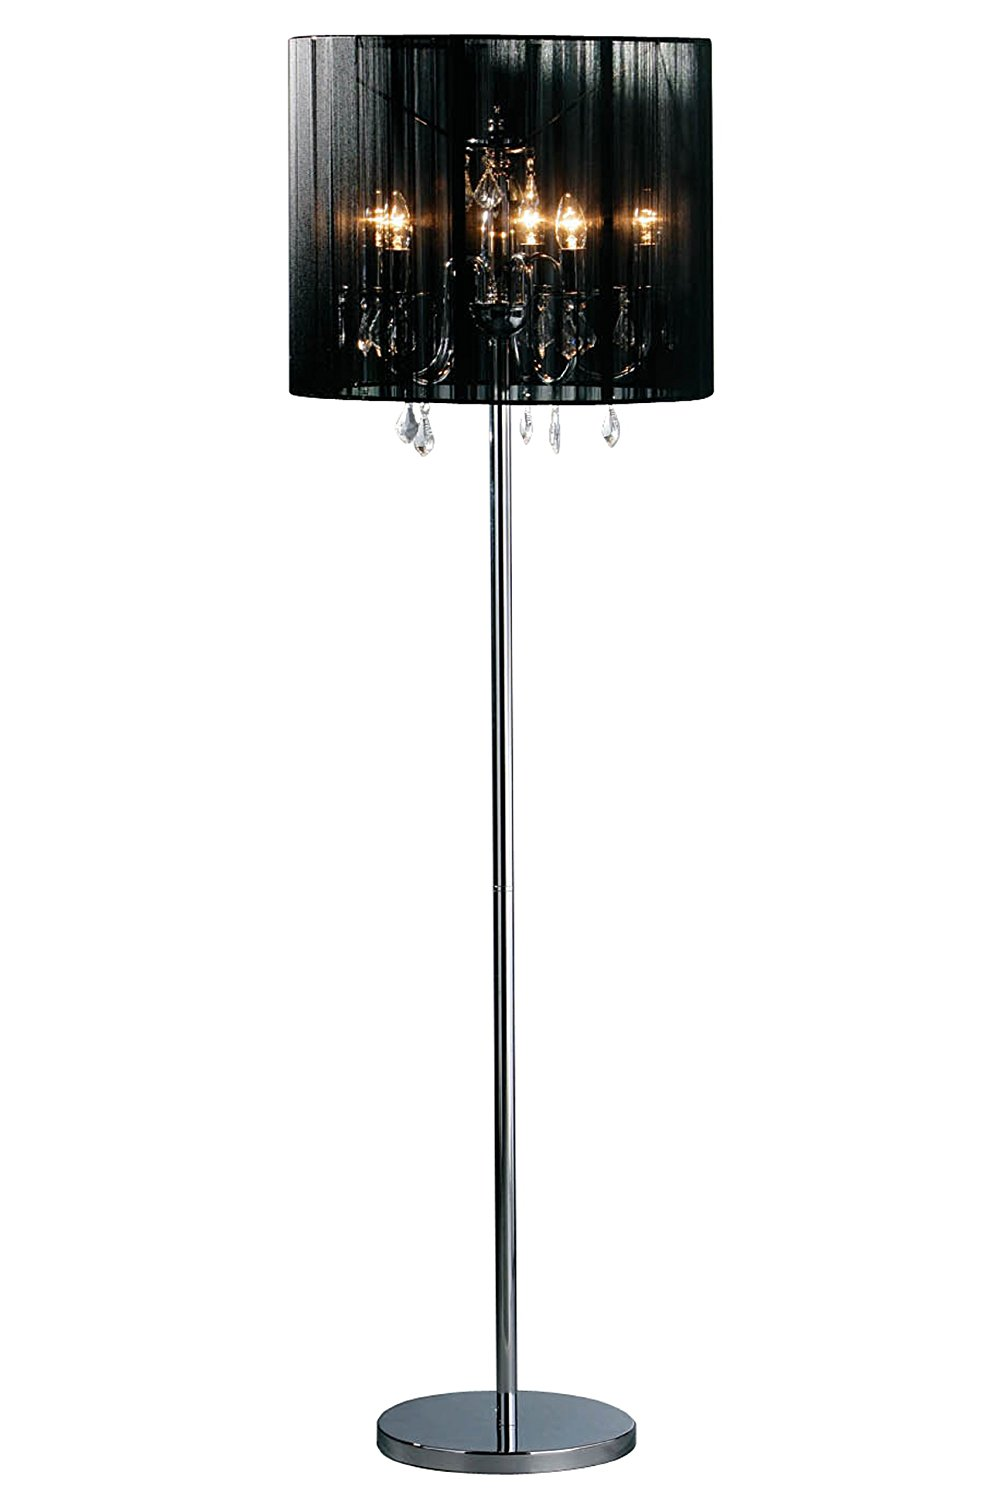 10 facts about black chandelier floor lamp warisan lighting introduction arubaitofo Image collections